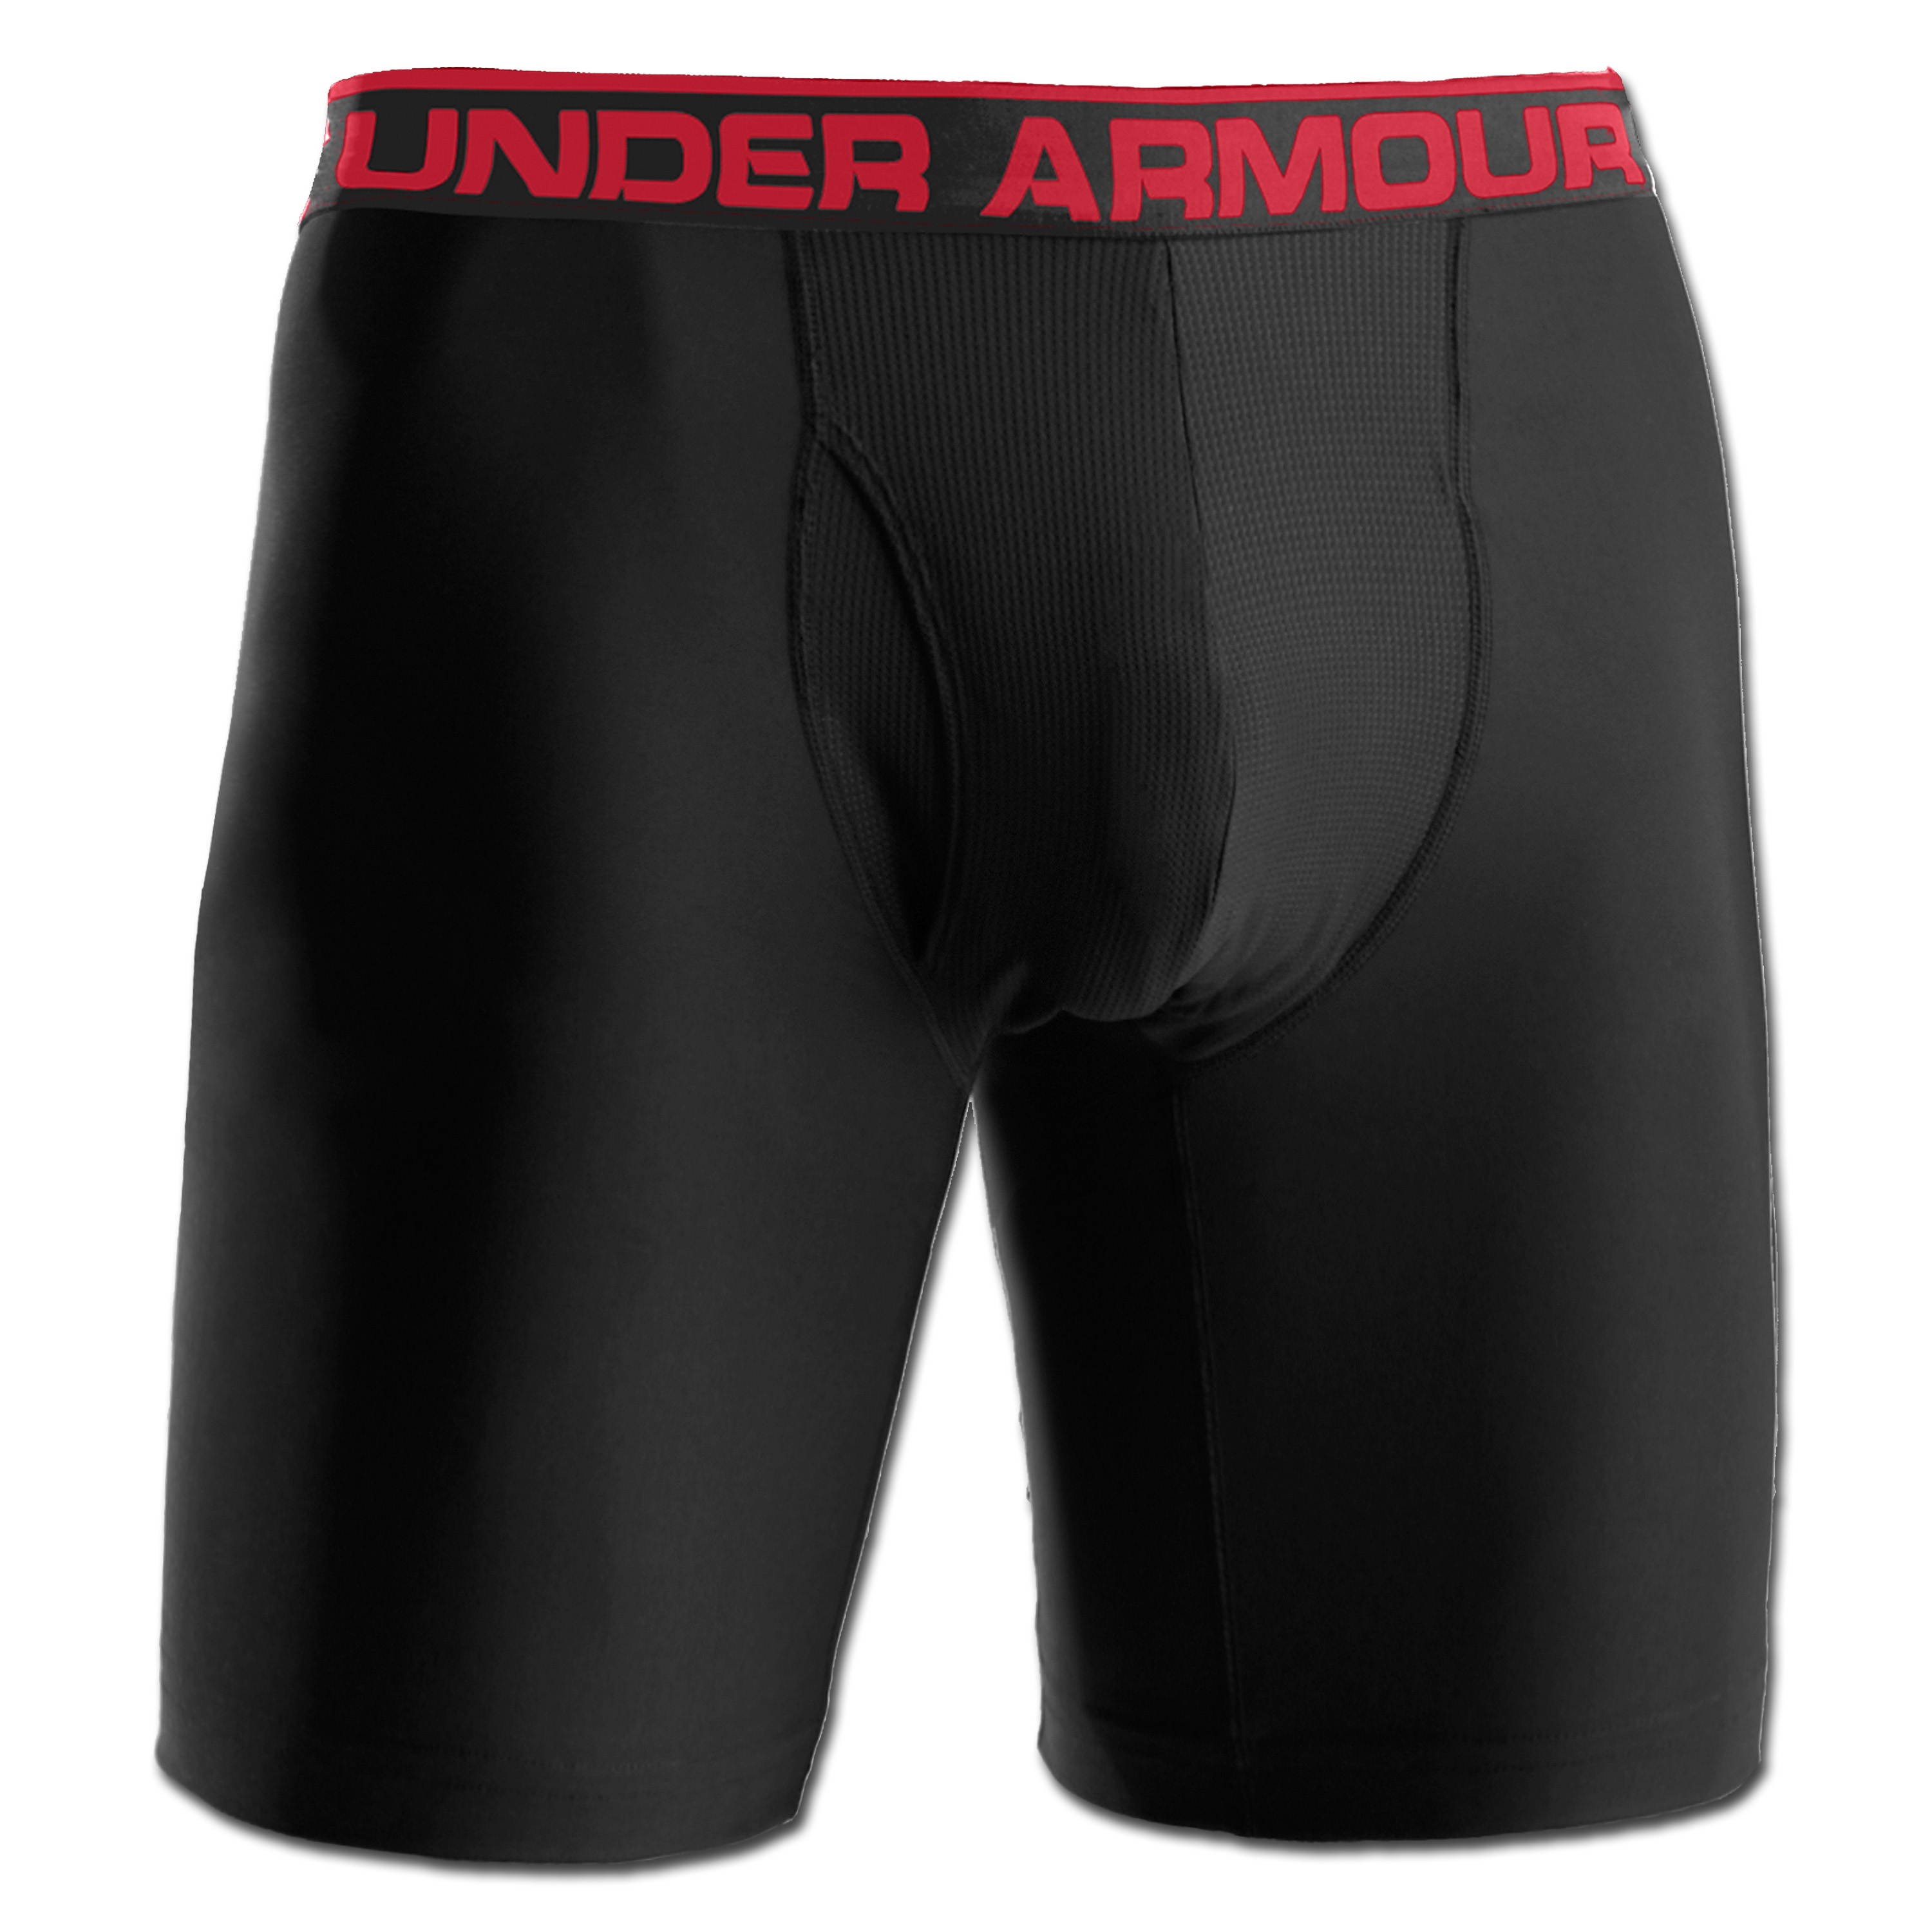 Under Armour Boxershorts 9 schwarz